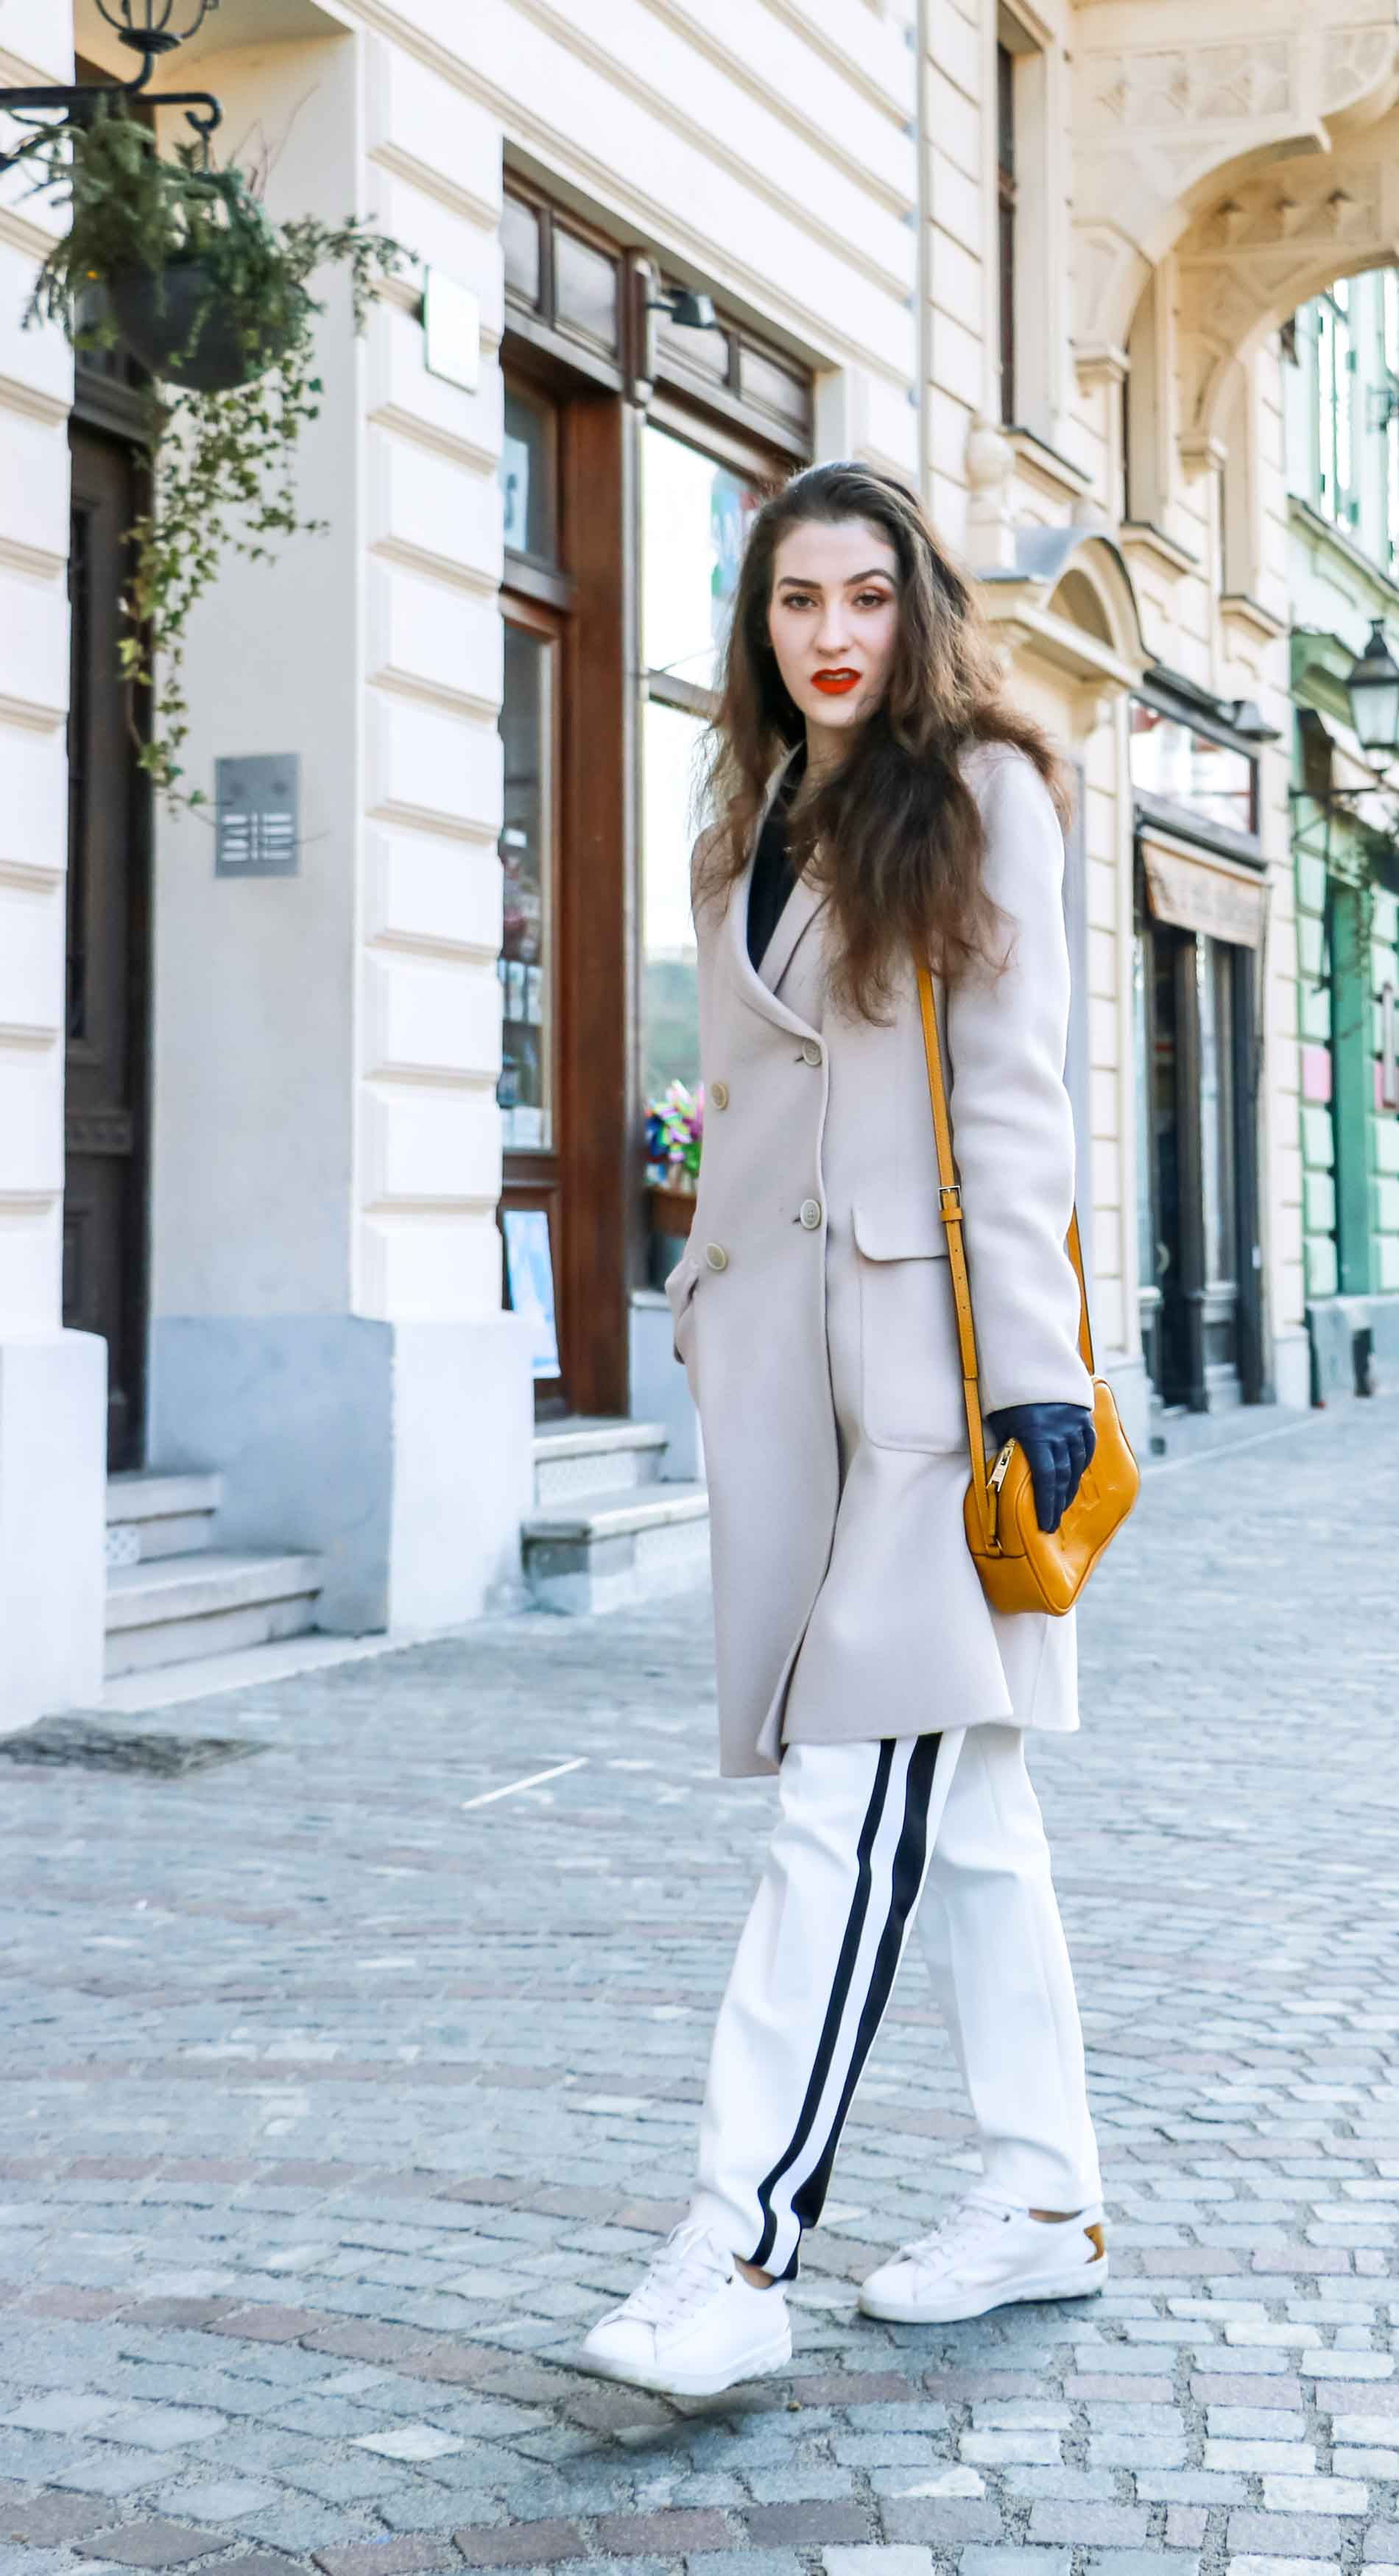 Fashion Blogger Veronika Lipar of Brunette from Wall Street wearing white track pants with black side stripe from Escada, black silk blouse, off-white pastel double breasted coat from Weekend Max Mara, white leather sneakers from Diesel, yellow shoulder bag with logo from Escada while walking down the street in Ljubljana